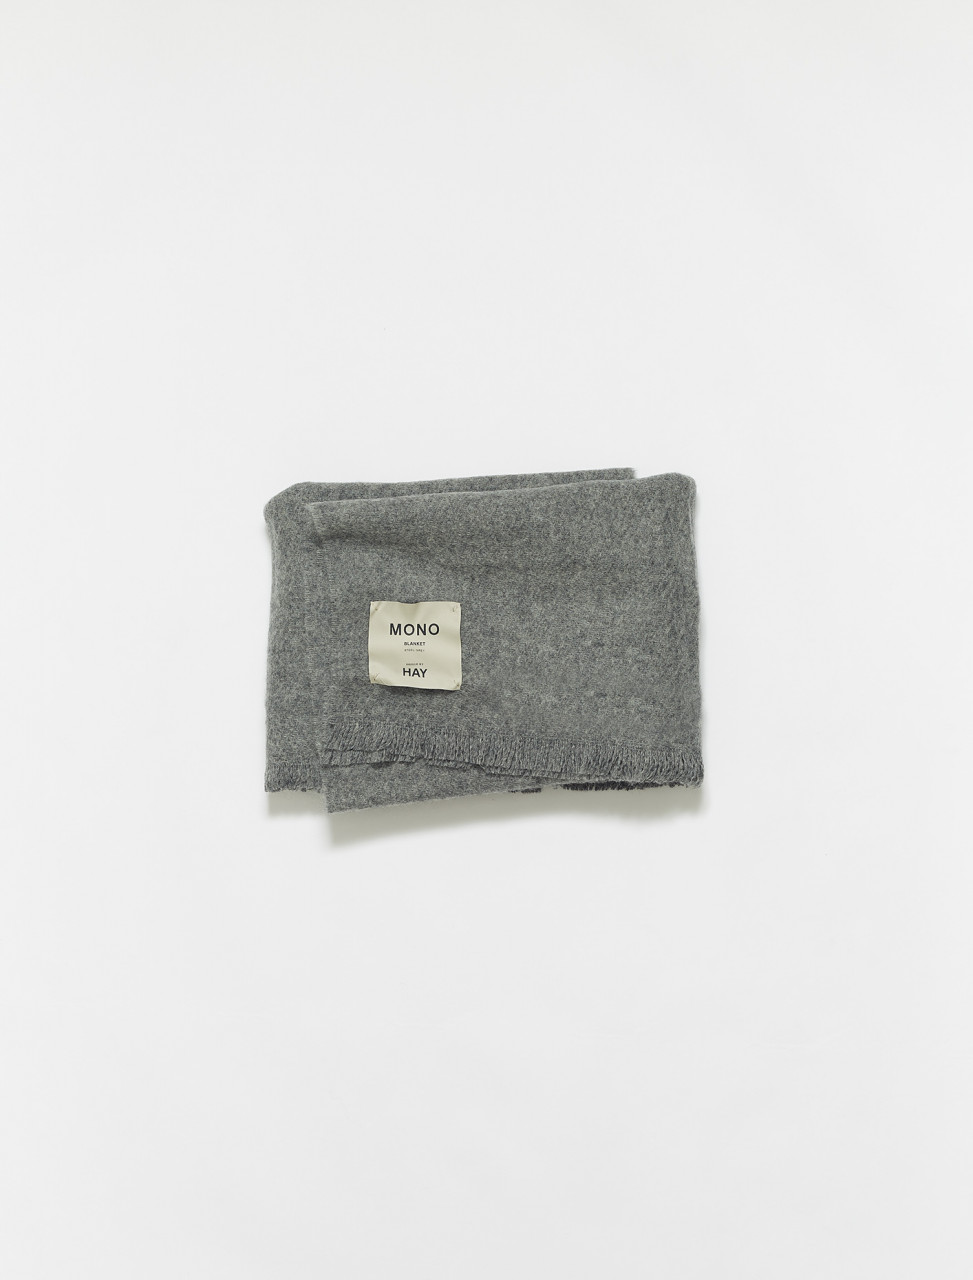 283-507549 HAY MONO BLANKET STEEL GREY